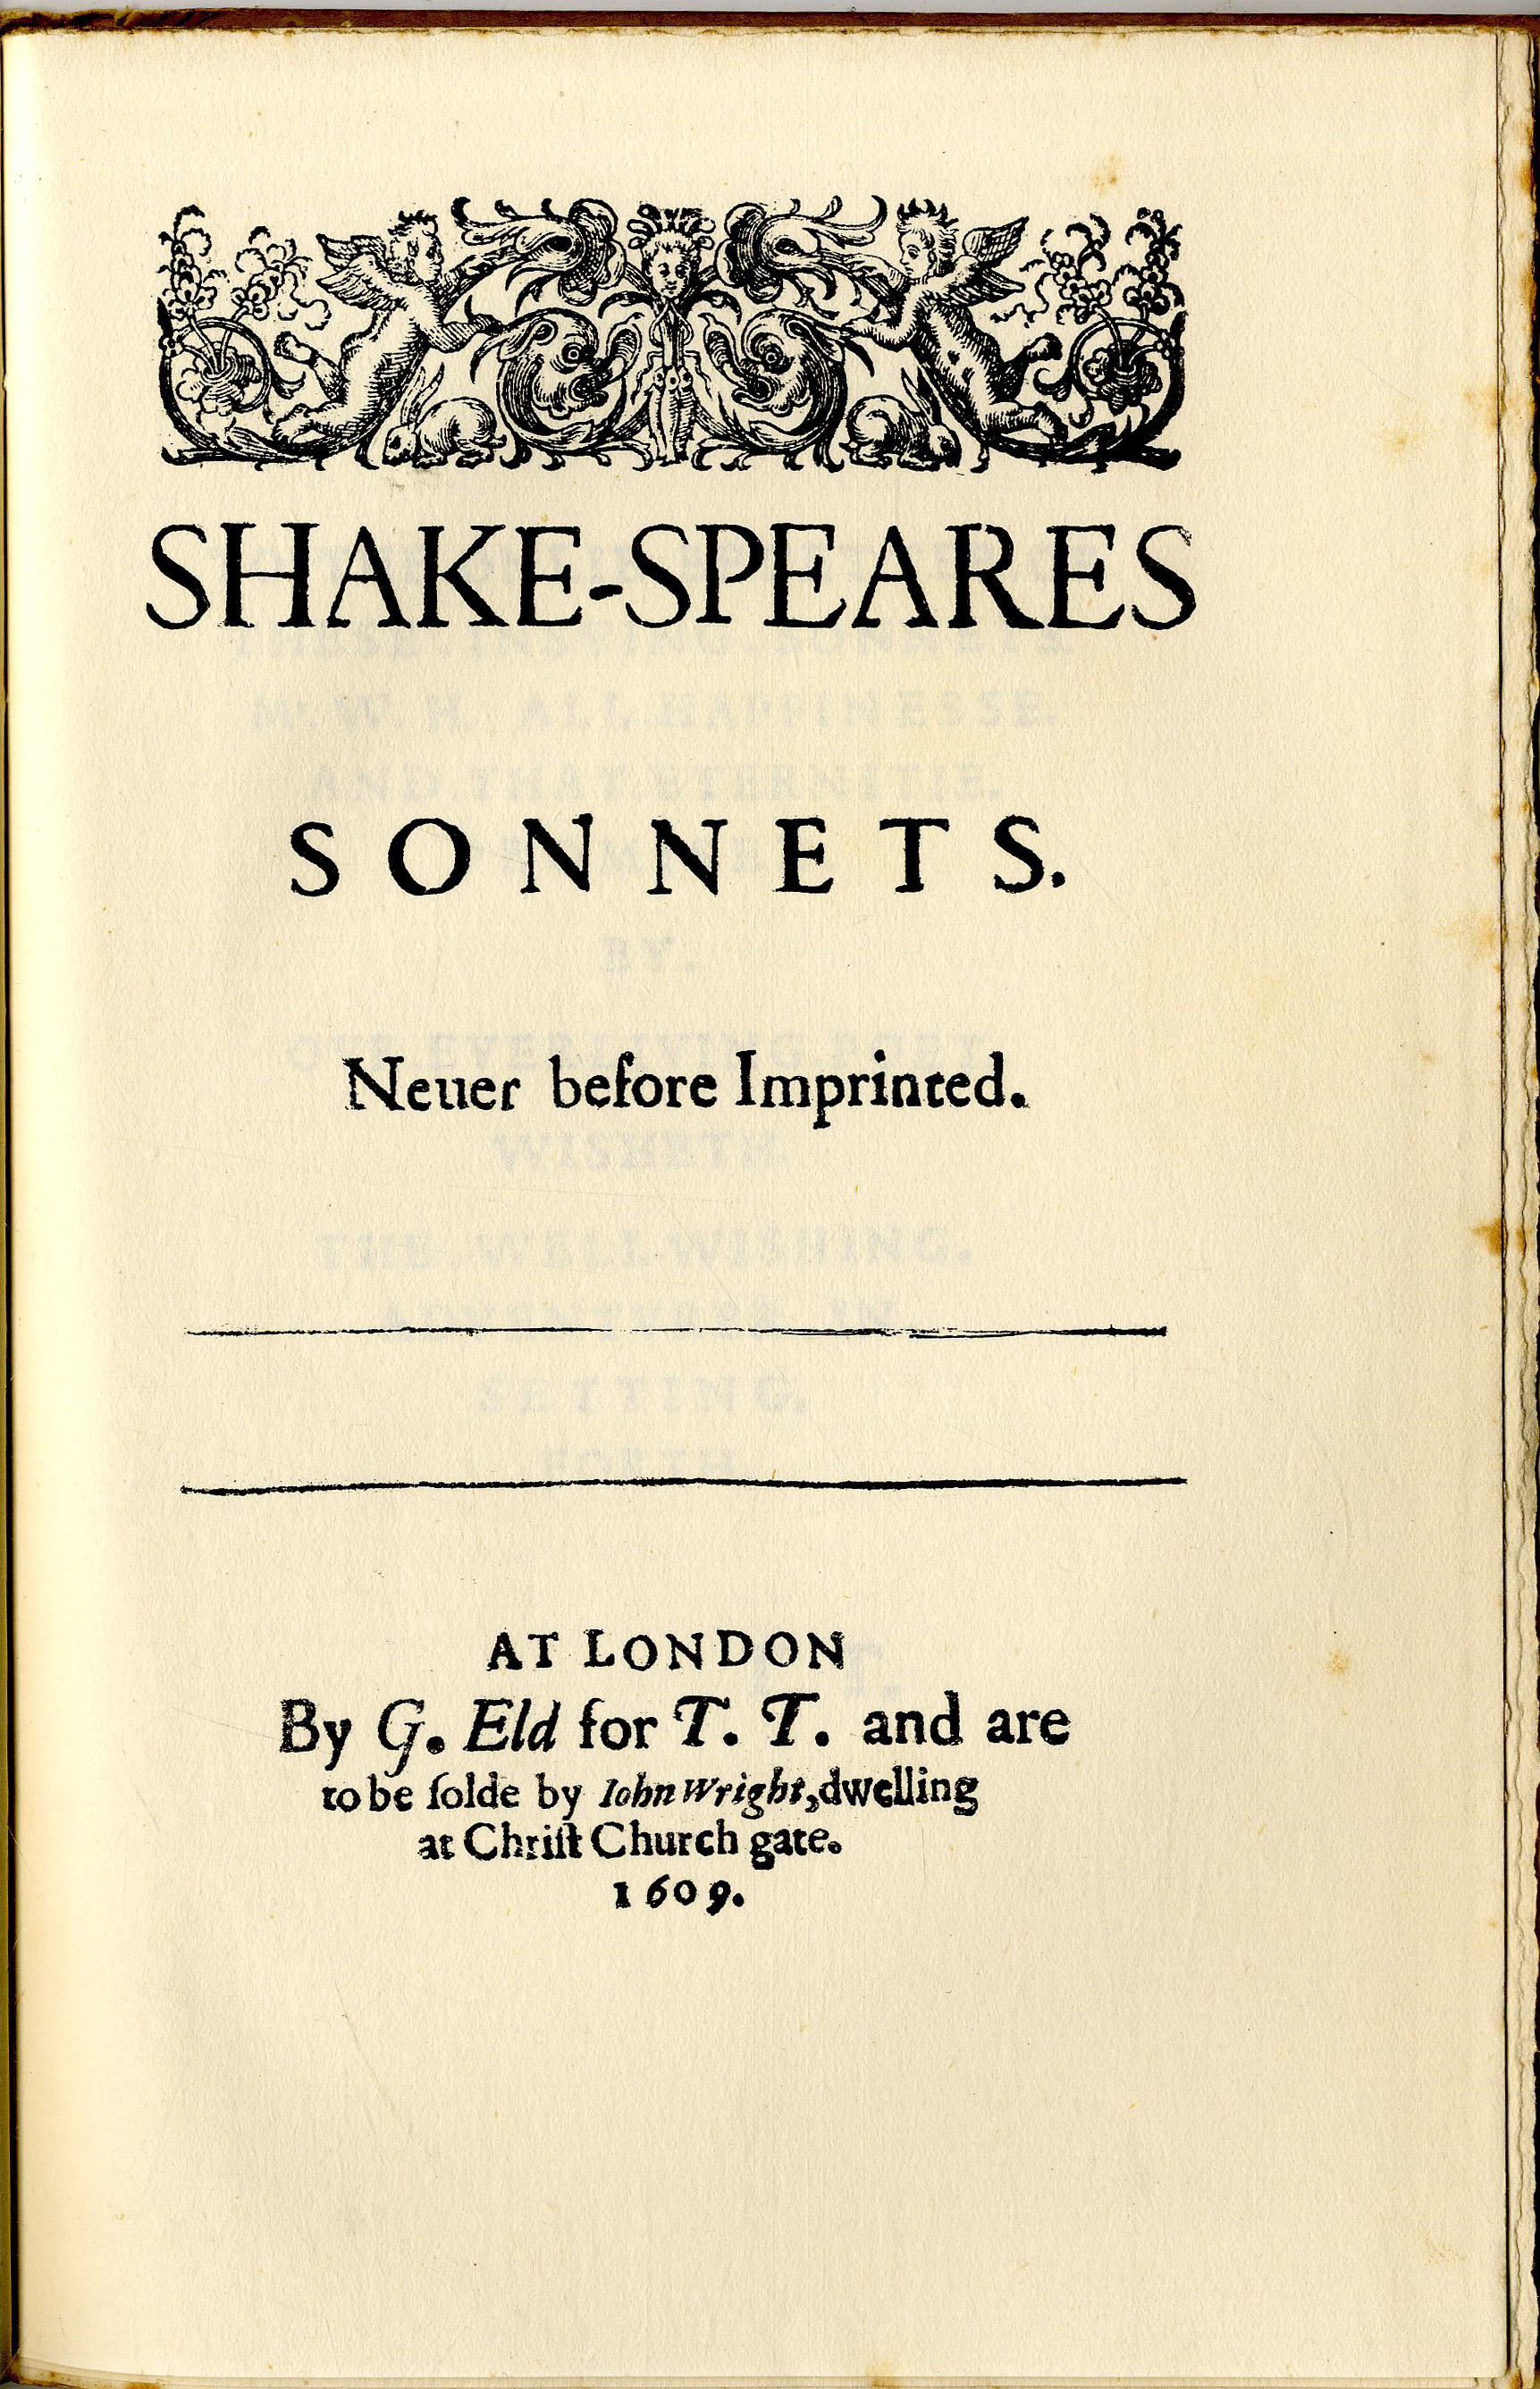 a description of sonnets in an insight into shakespeares mind By examining the logical and numerological relation of the 154 sonnets as nature to the division into sequences of 28 mistress sonnets and 126 master mistress sonnets, volume 1 demonstrates that the sonnets articulate the logical conditions for any mythic expression including shakespeare's plays shakespeare sets out the natural logic of the sexual dynamic of female and male in nature as the basis for the logic of the mind.